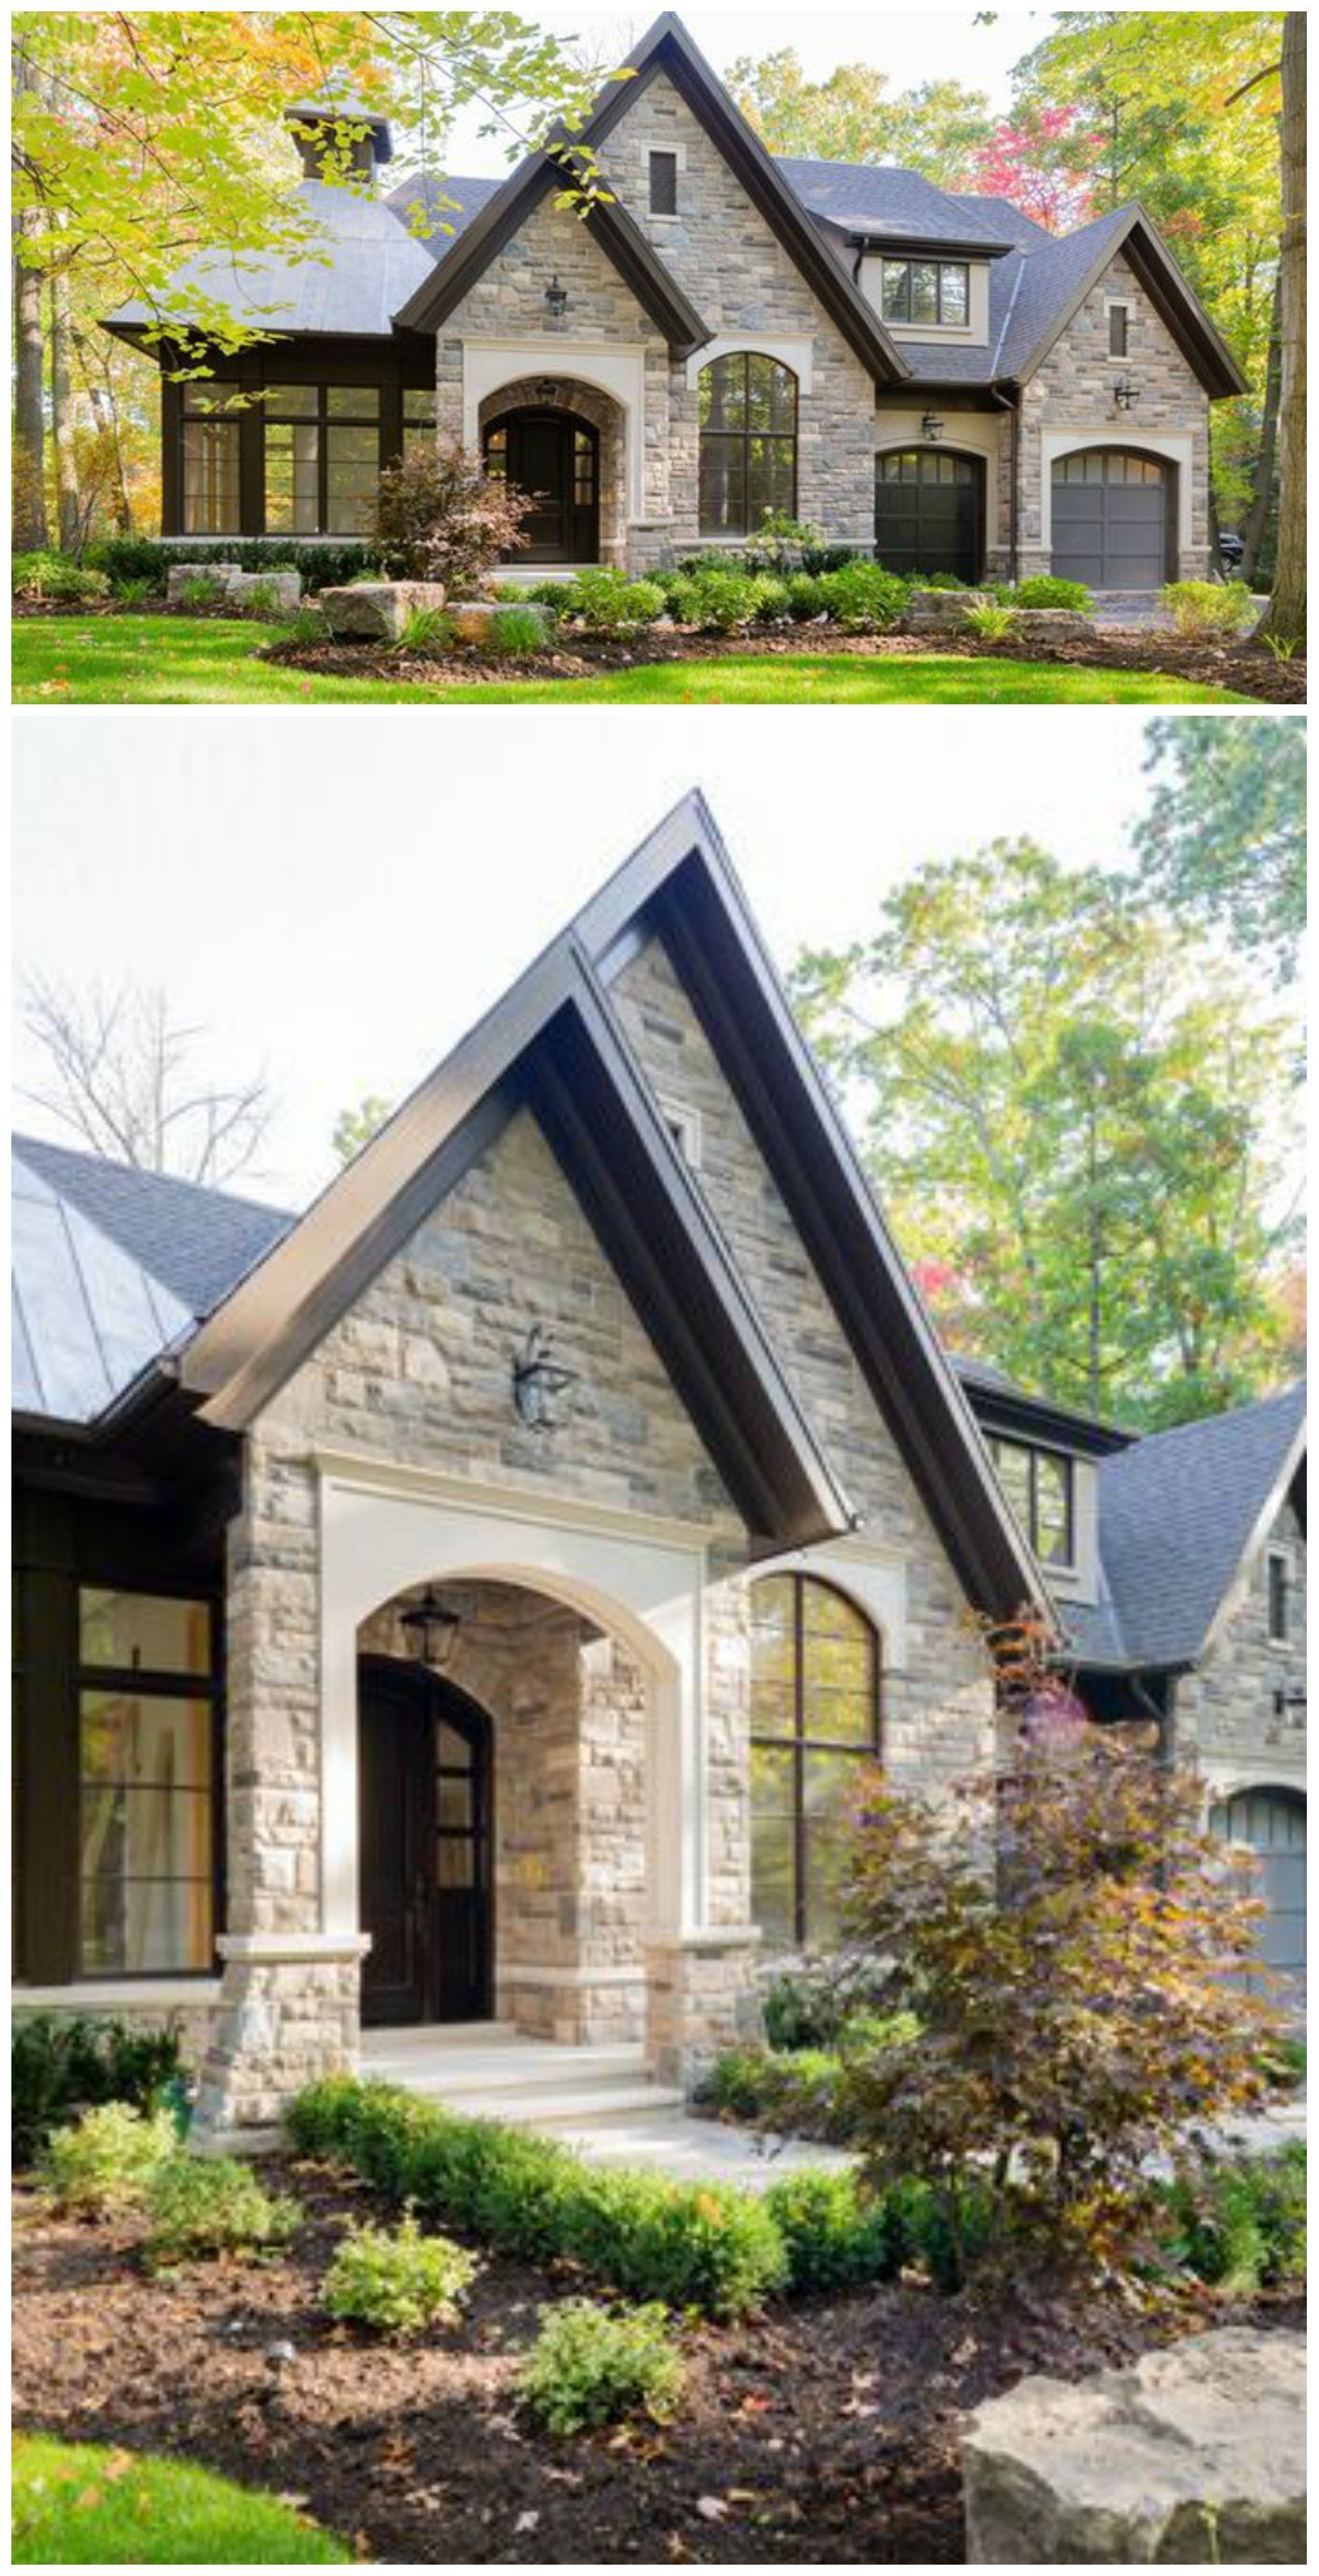 Beautiful home by david small designs exterior envy for Beautiful home entrance design